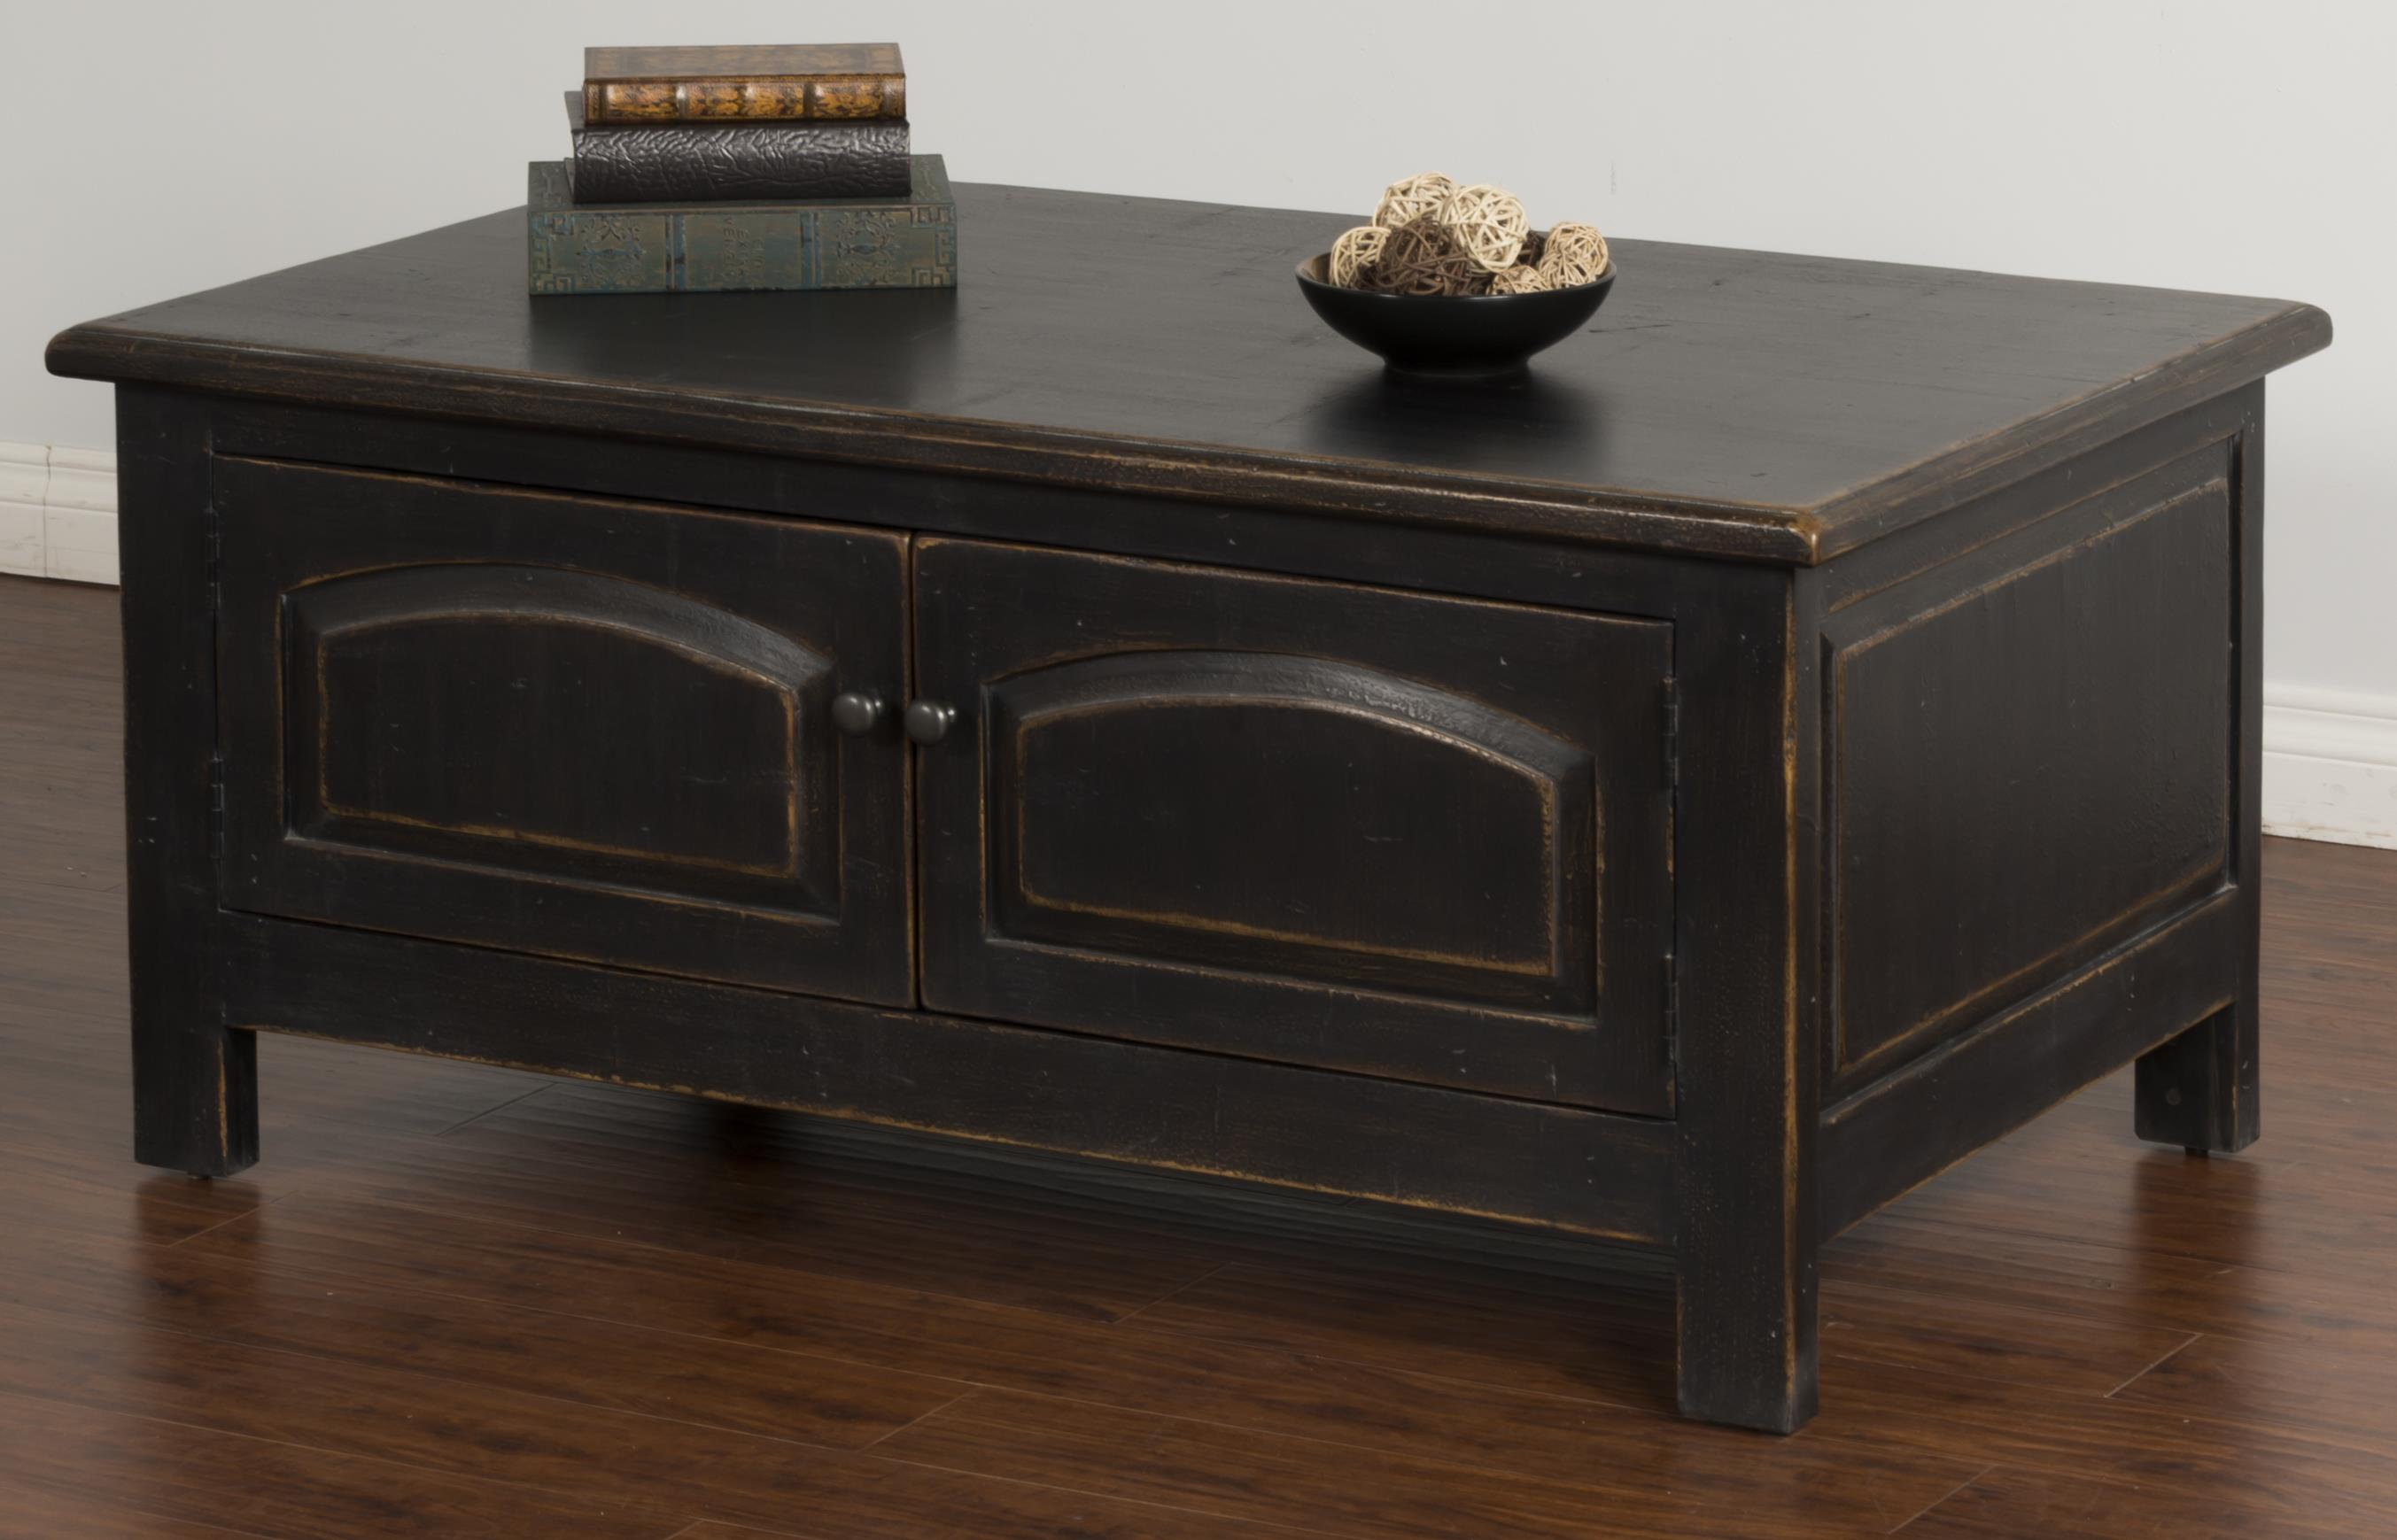 Sunny Designs Black Coffee Table w/ Storage - Item Number: 2271B-C